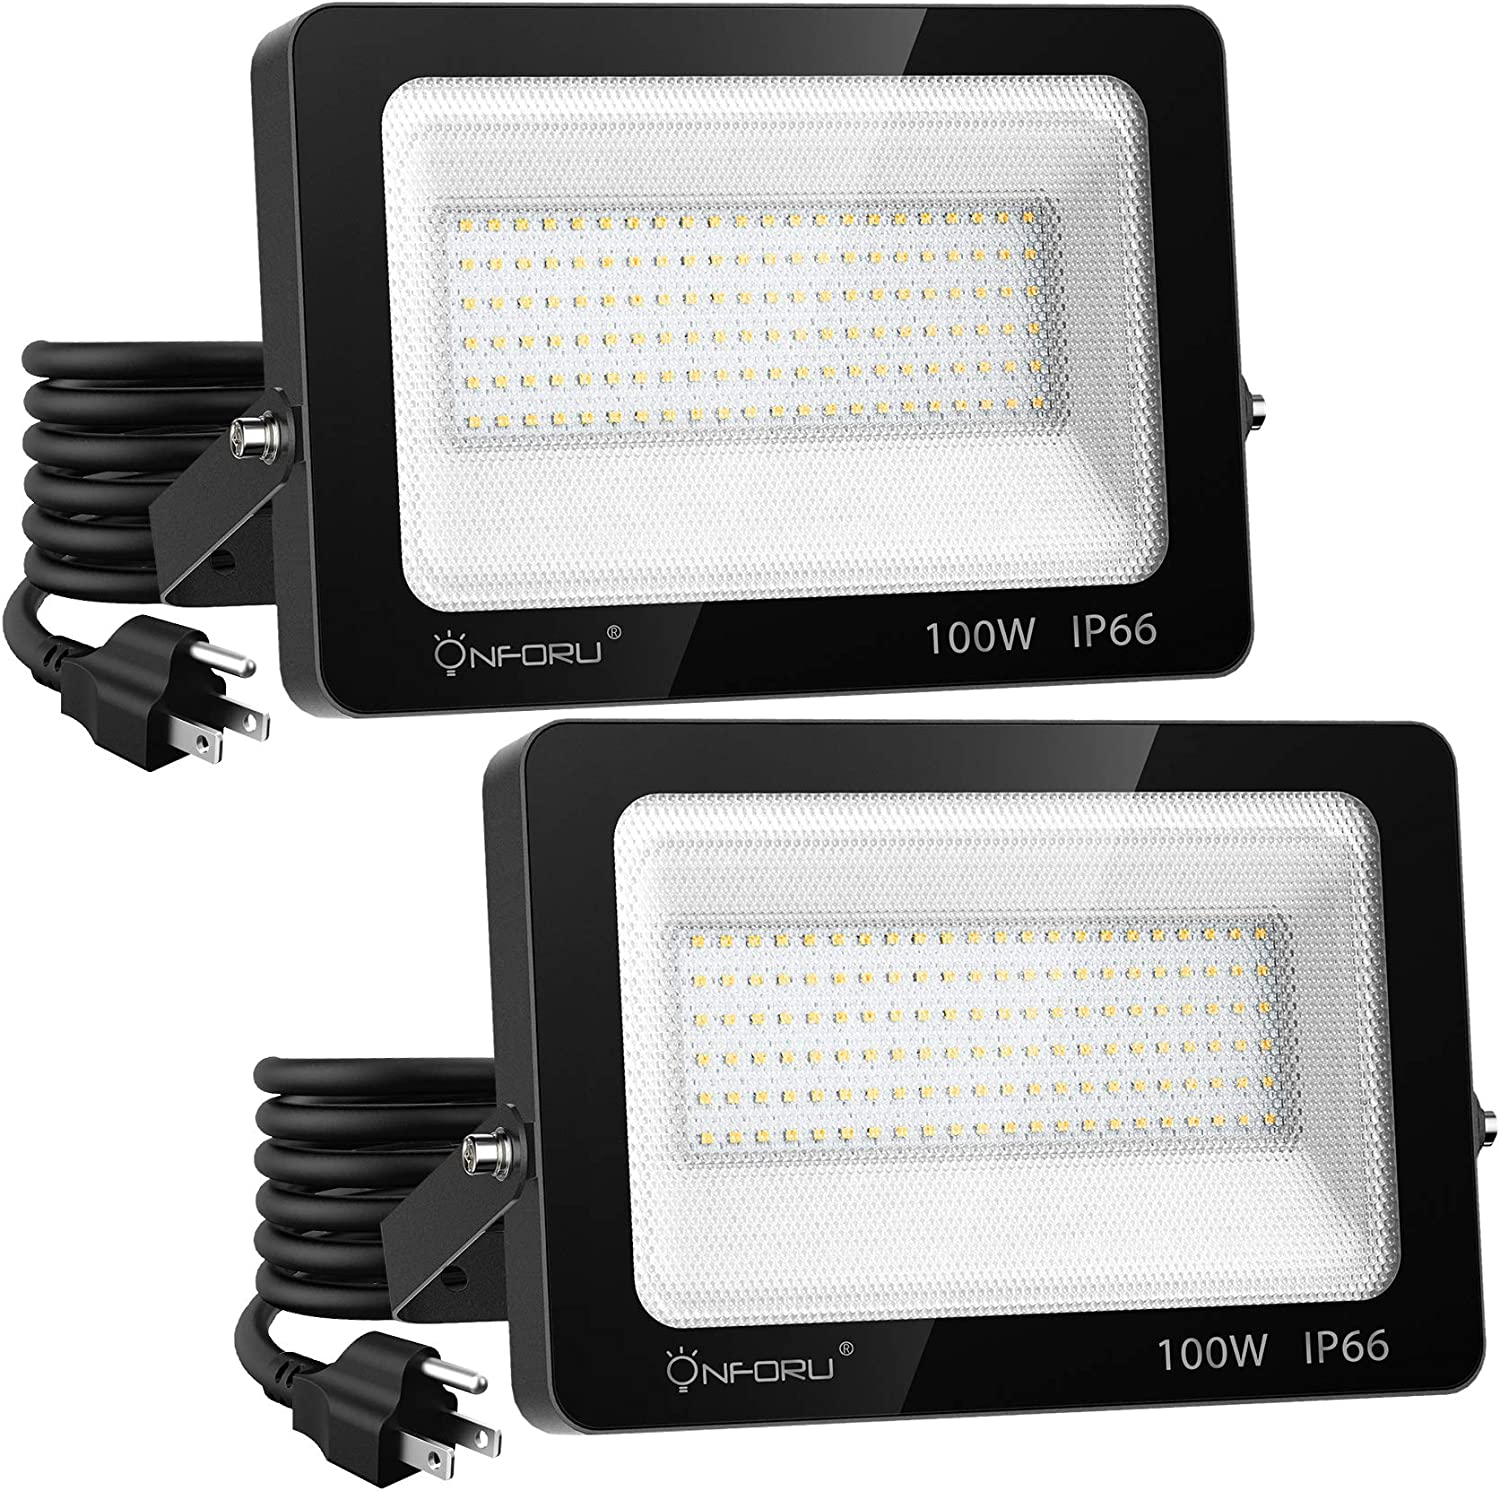 Onforu 2 Pack 100W LED Flood Light with Plug 700W Equiv., 10000lm Super Bright LED Work Light, IP66 Waterproof Outdoor Security Lights, 6000K Daylight White Floodlight for Yard Garden Patio Playground